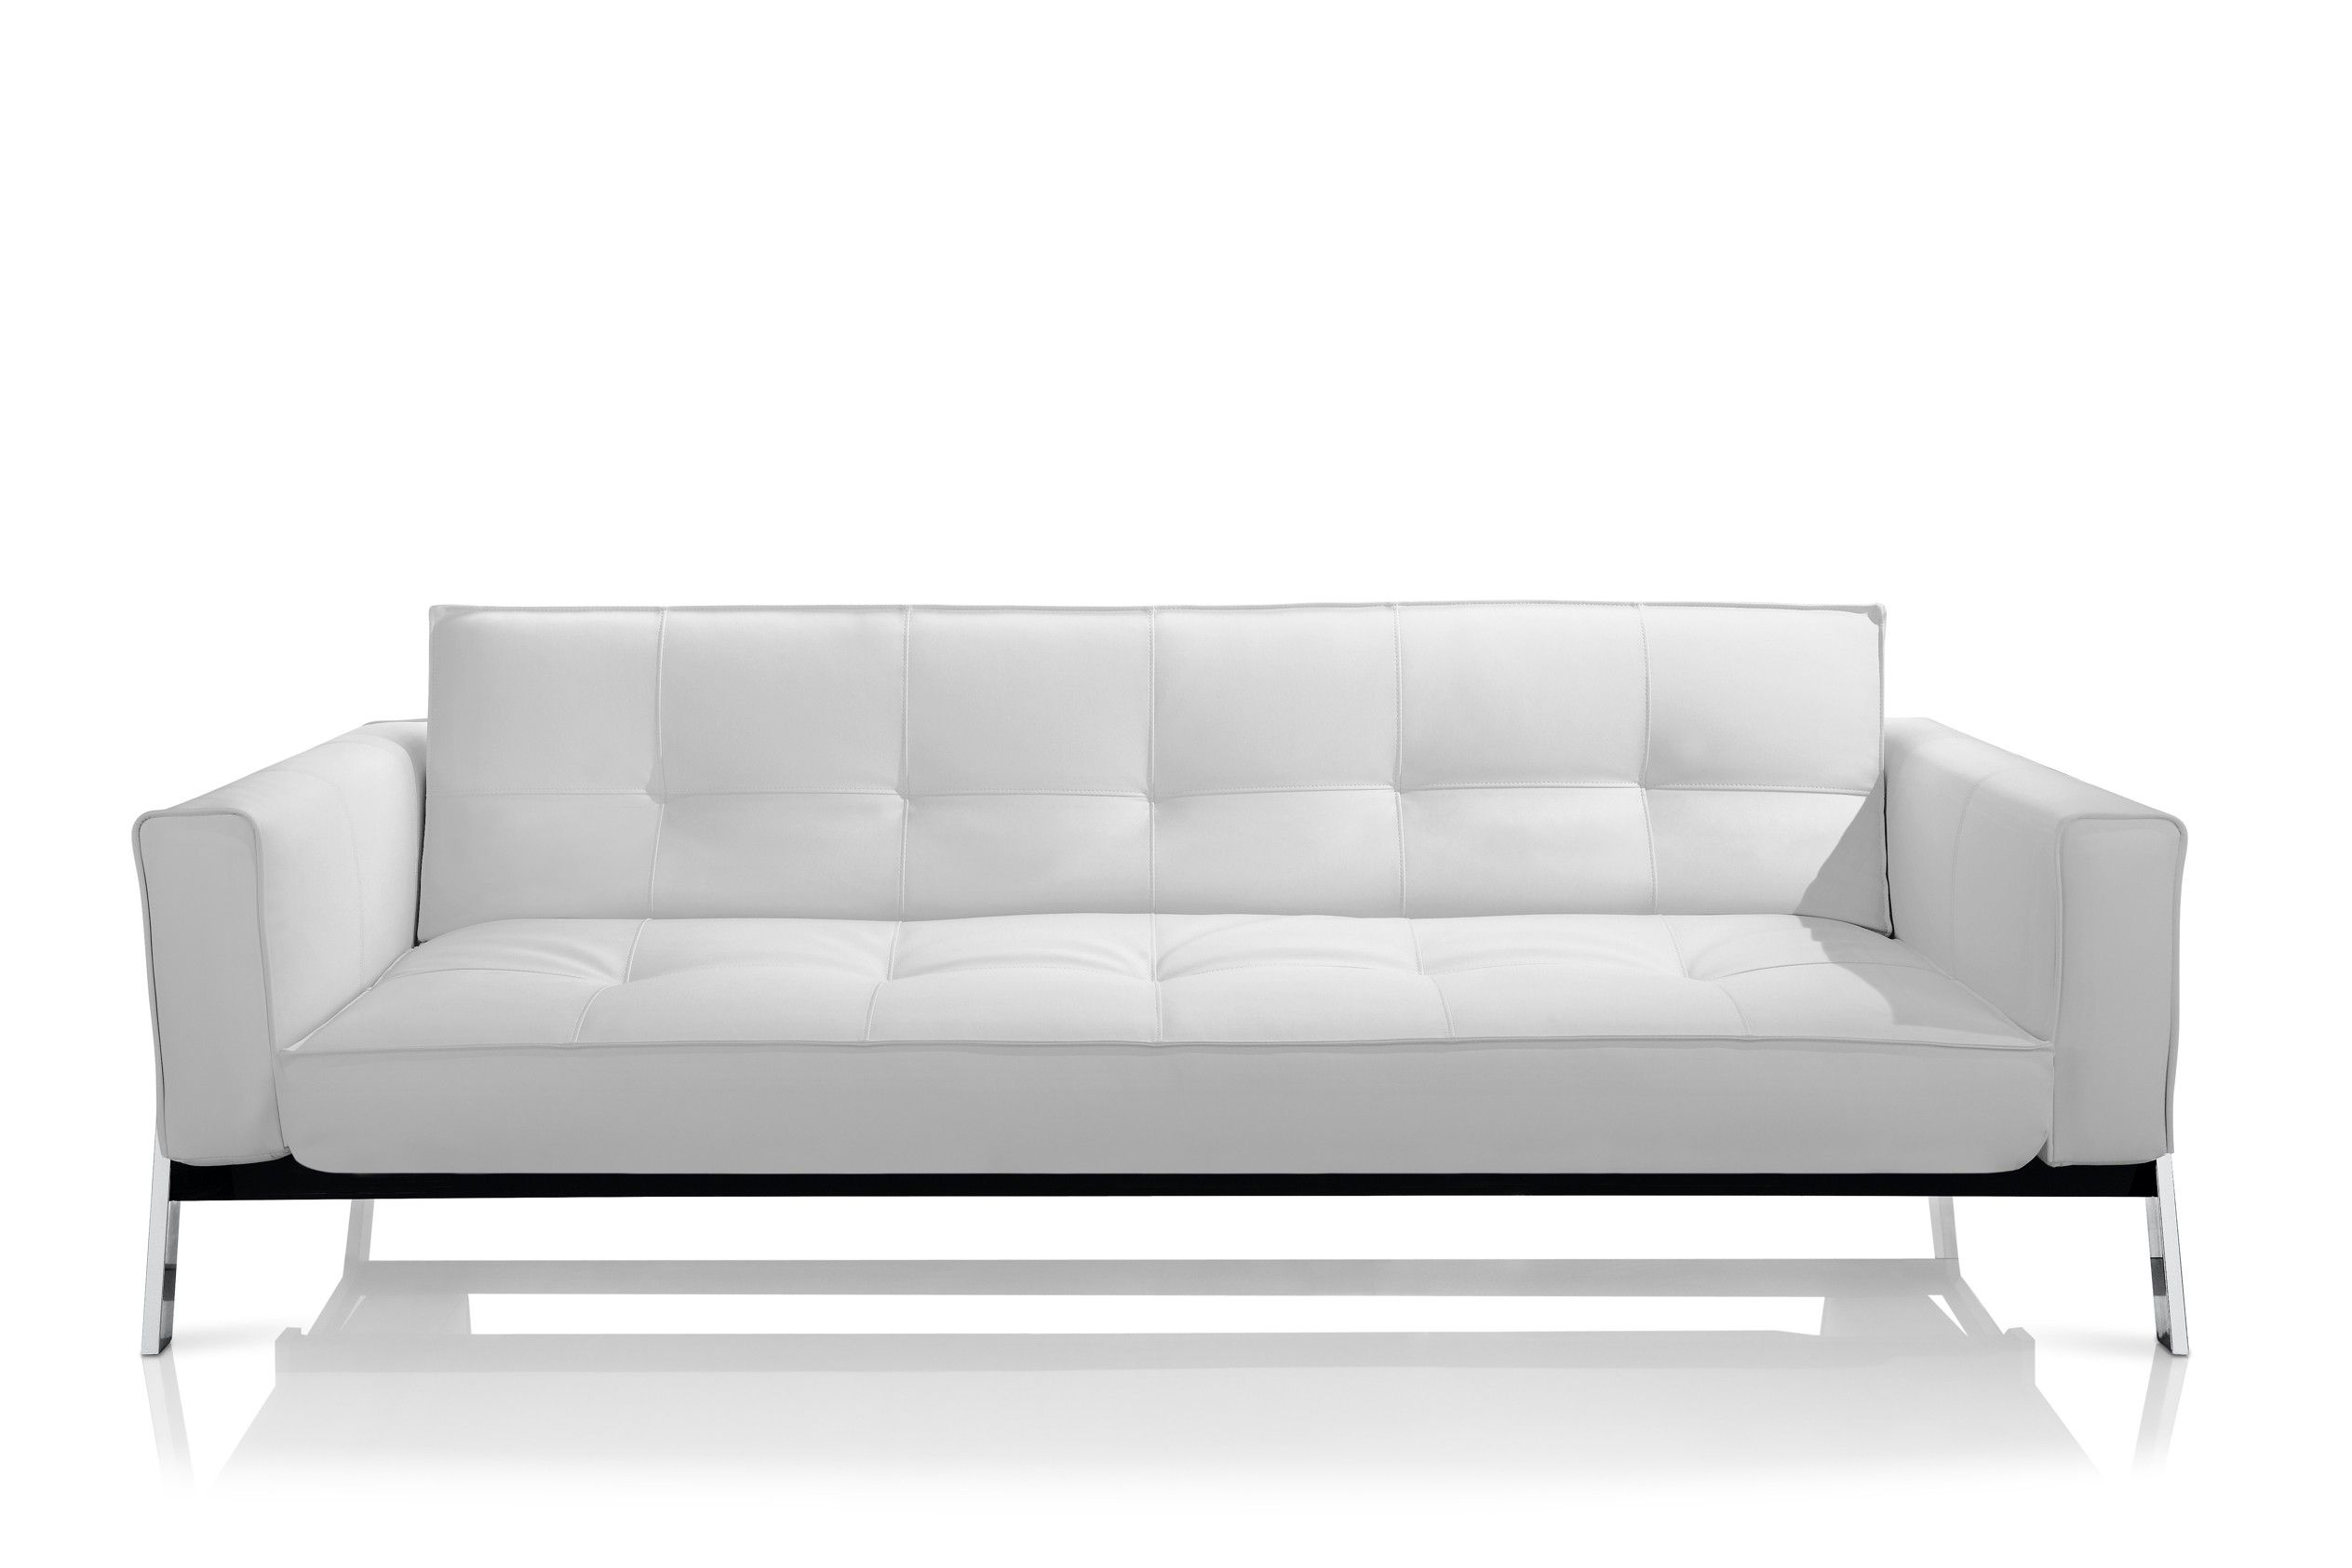 awesome white fabric sofa new white fabric sofa 30 sofas and couches set with white fabric. Black Bedroom Furniture Sets. Home Design Ideas